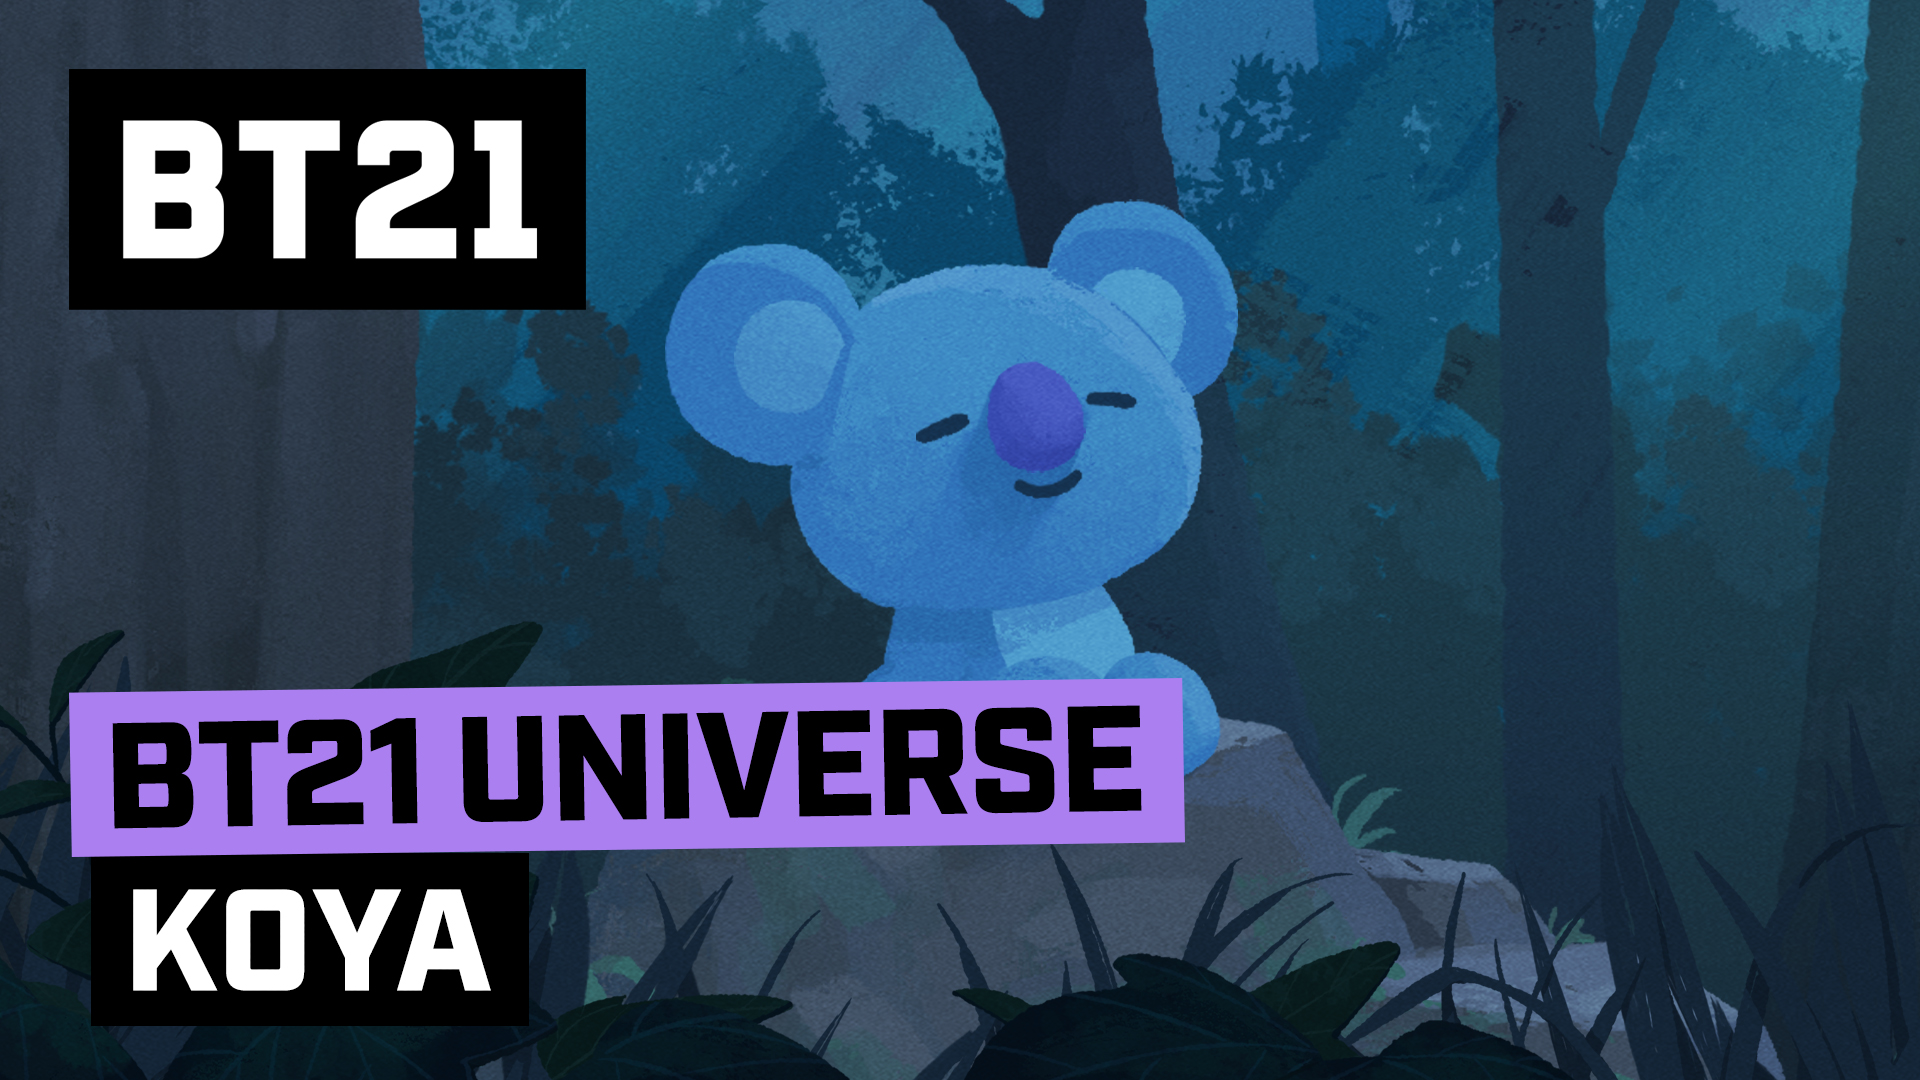 [BT21] BT21 UNIVERSE ANIMATION EP.05 - KOYA